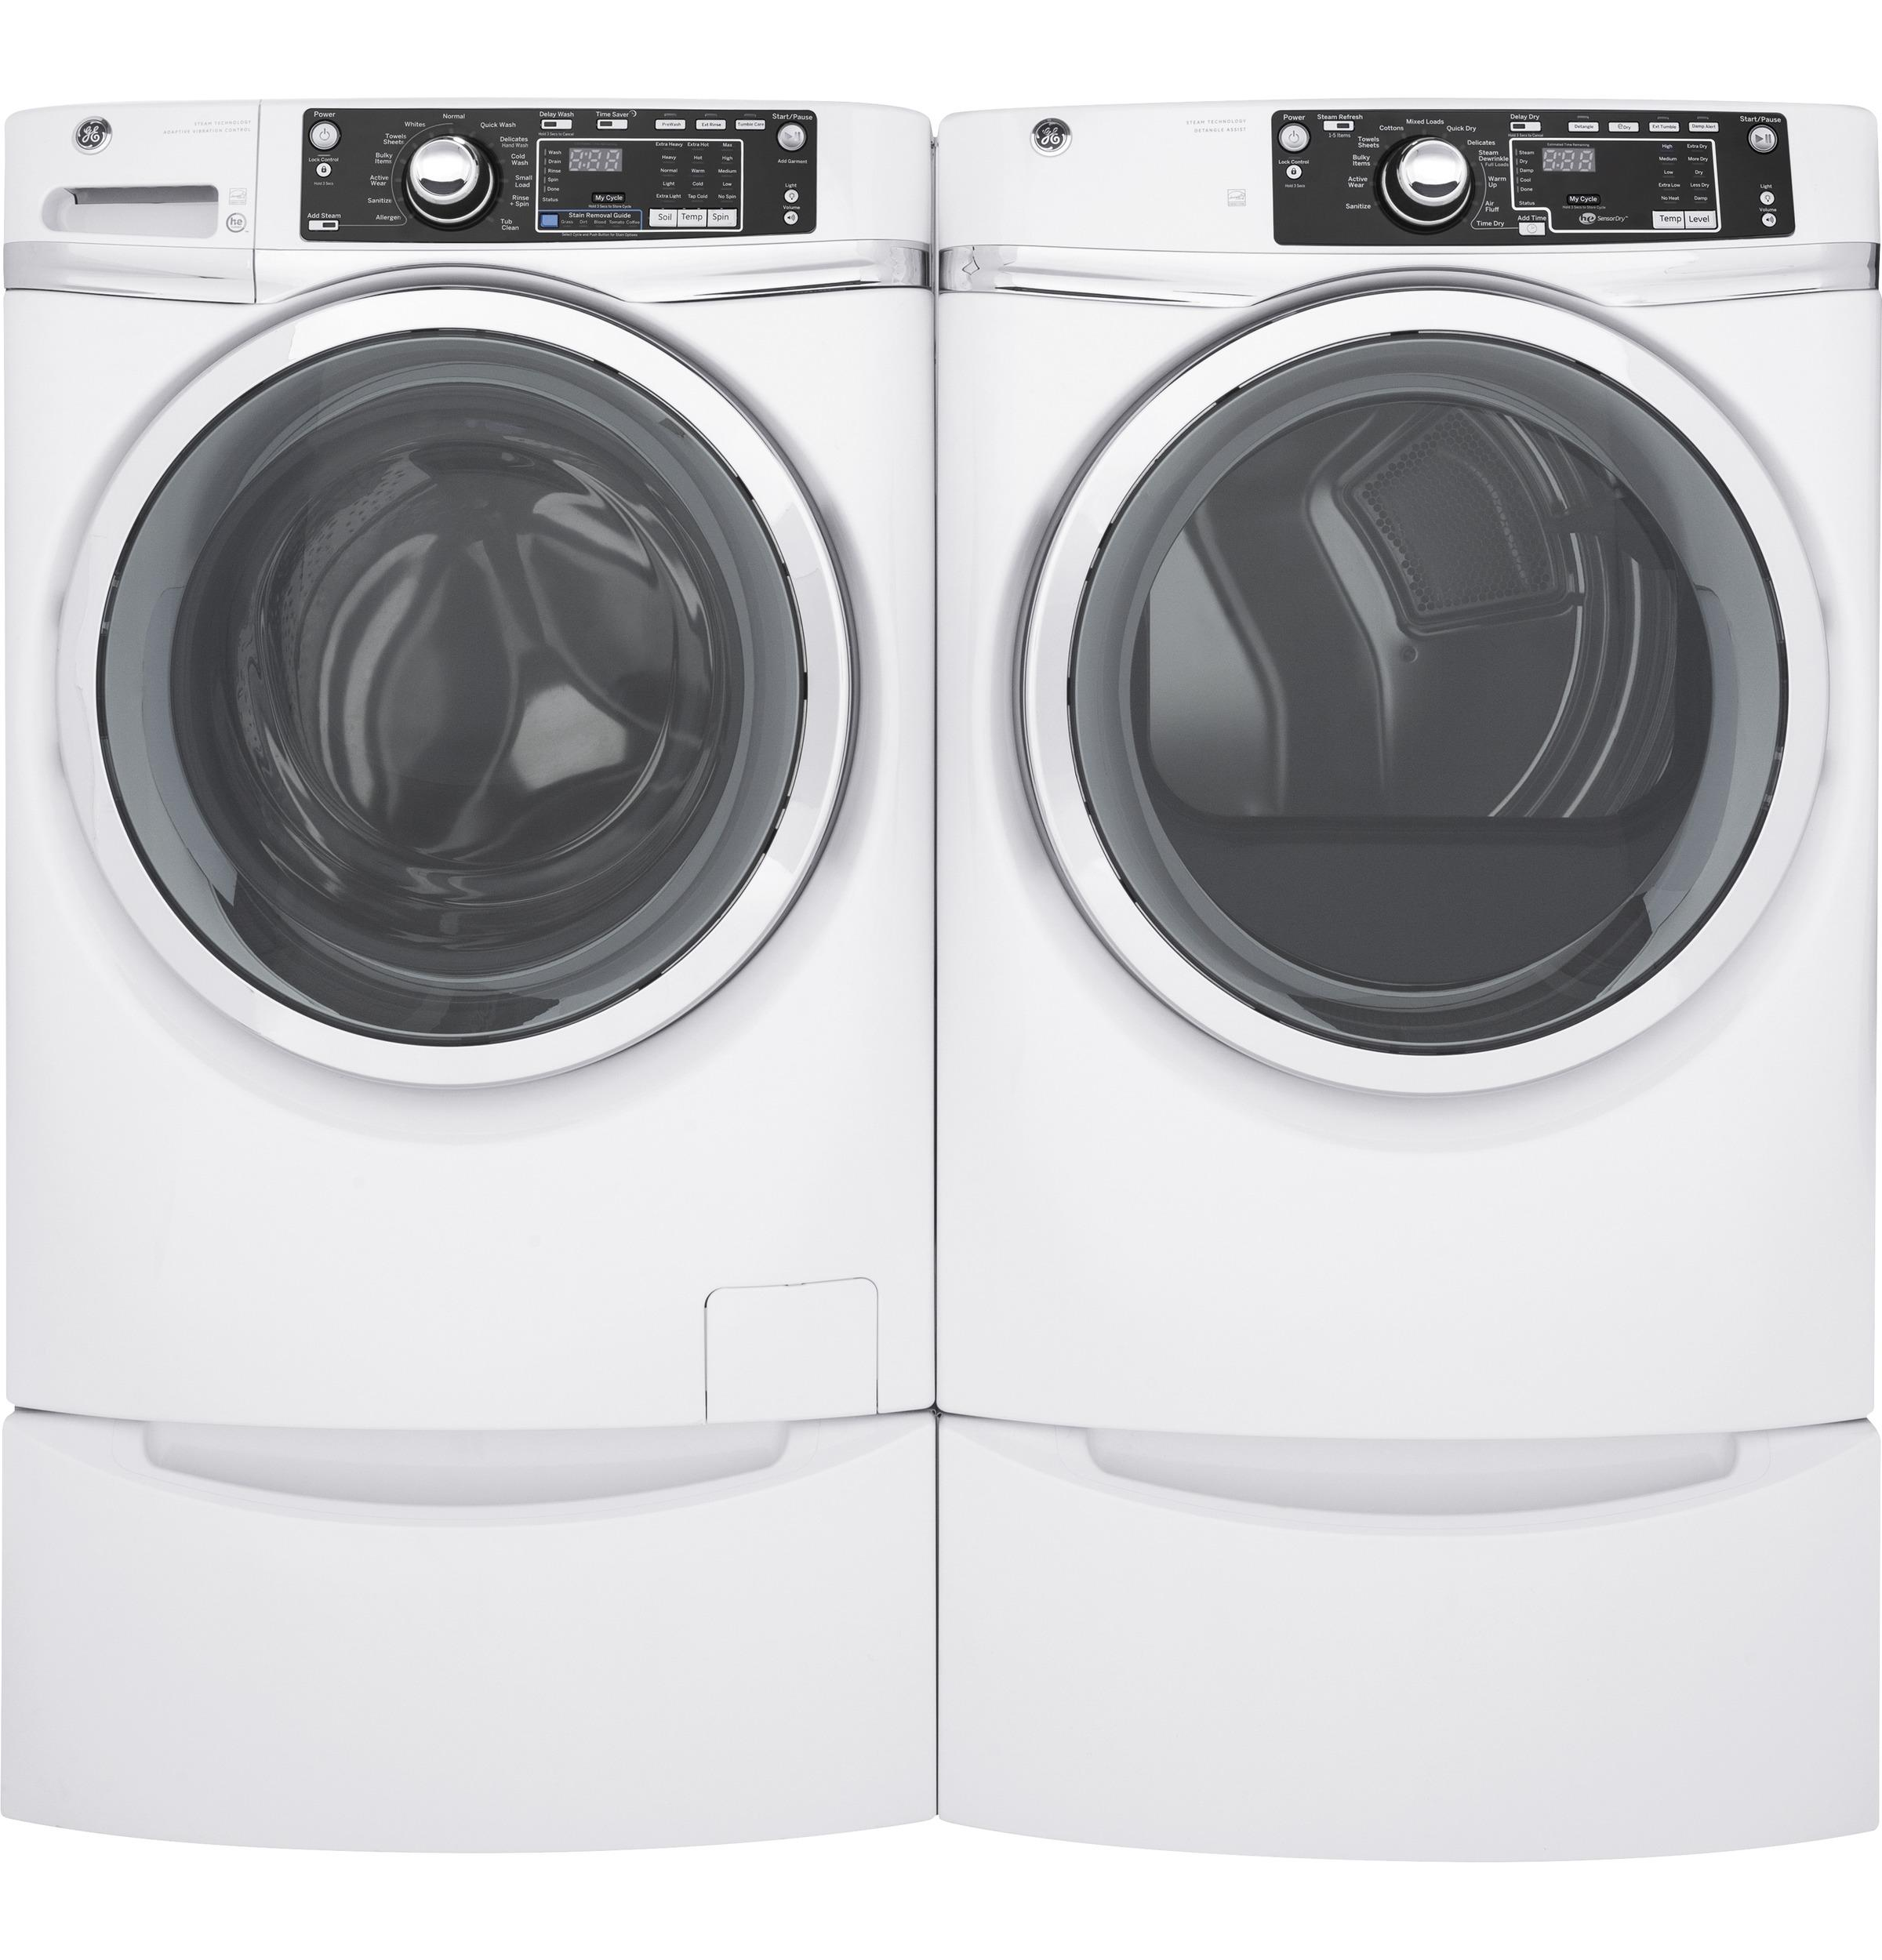 GE(R) 8.3 cu. ft. capacity Front Load electric ENERGY STAR(R) dryer with steam